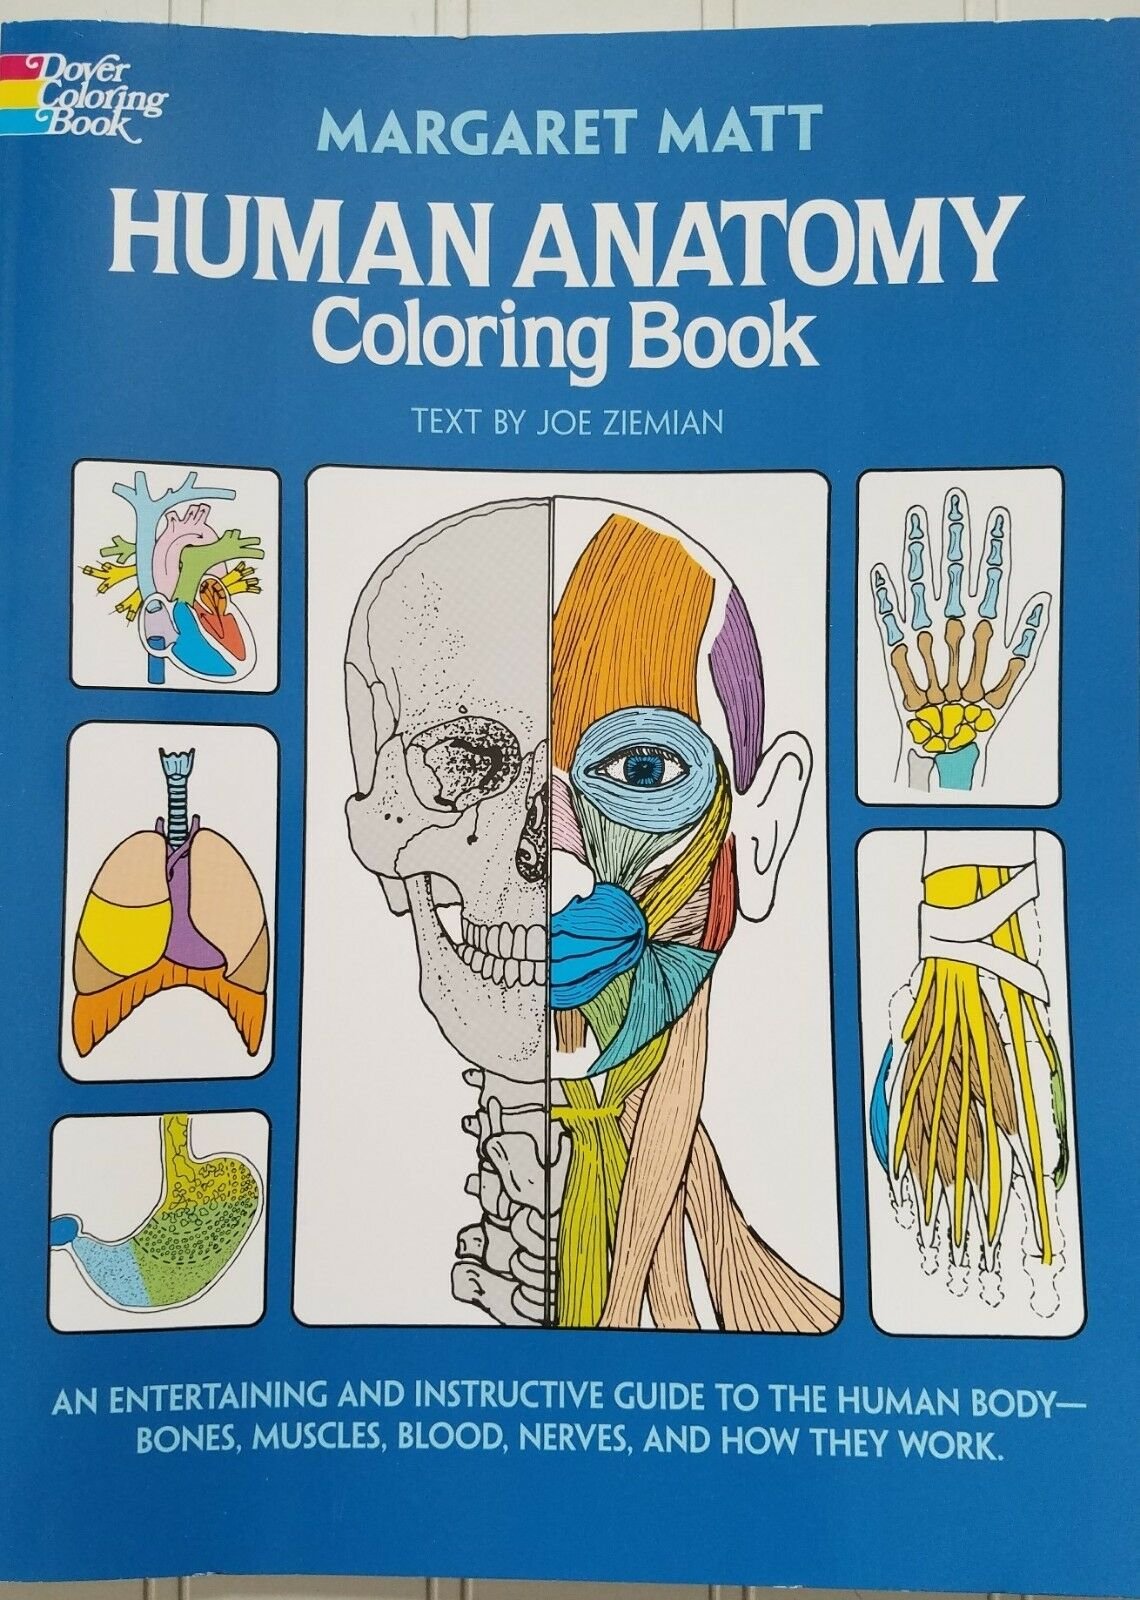 Human Anatomy Coloring Book (Dover Science Books) by Margaret Matt 3